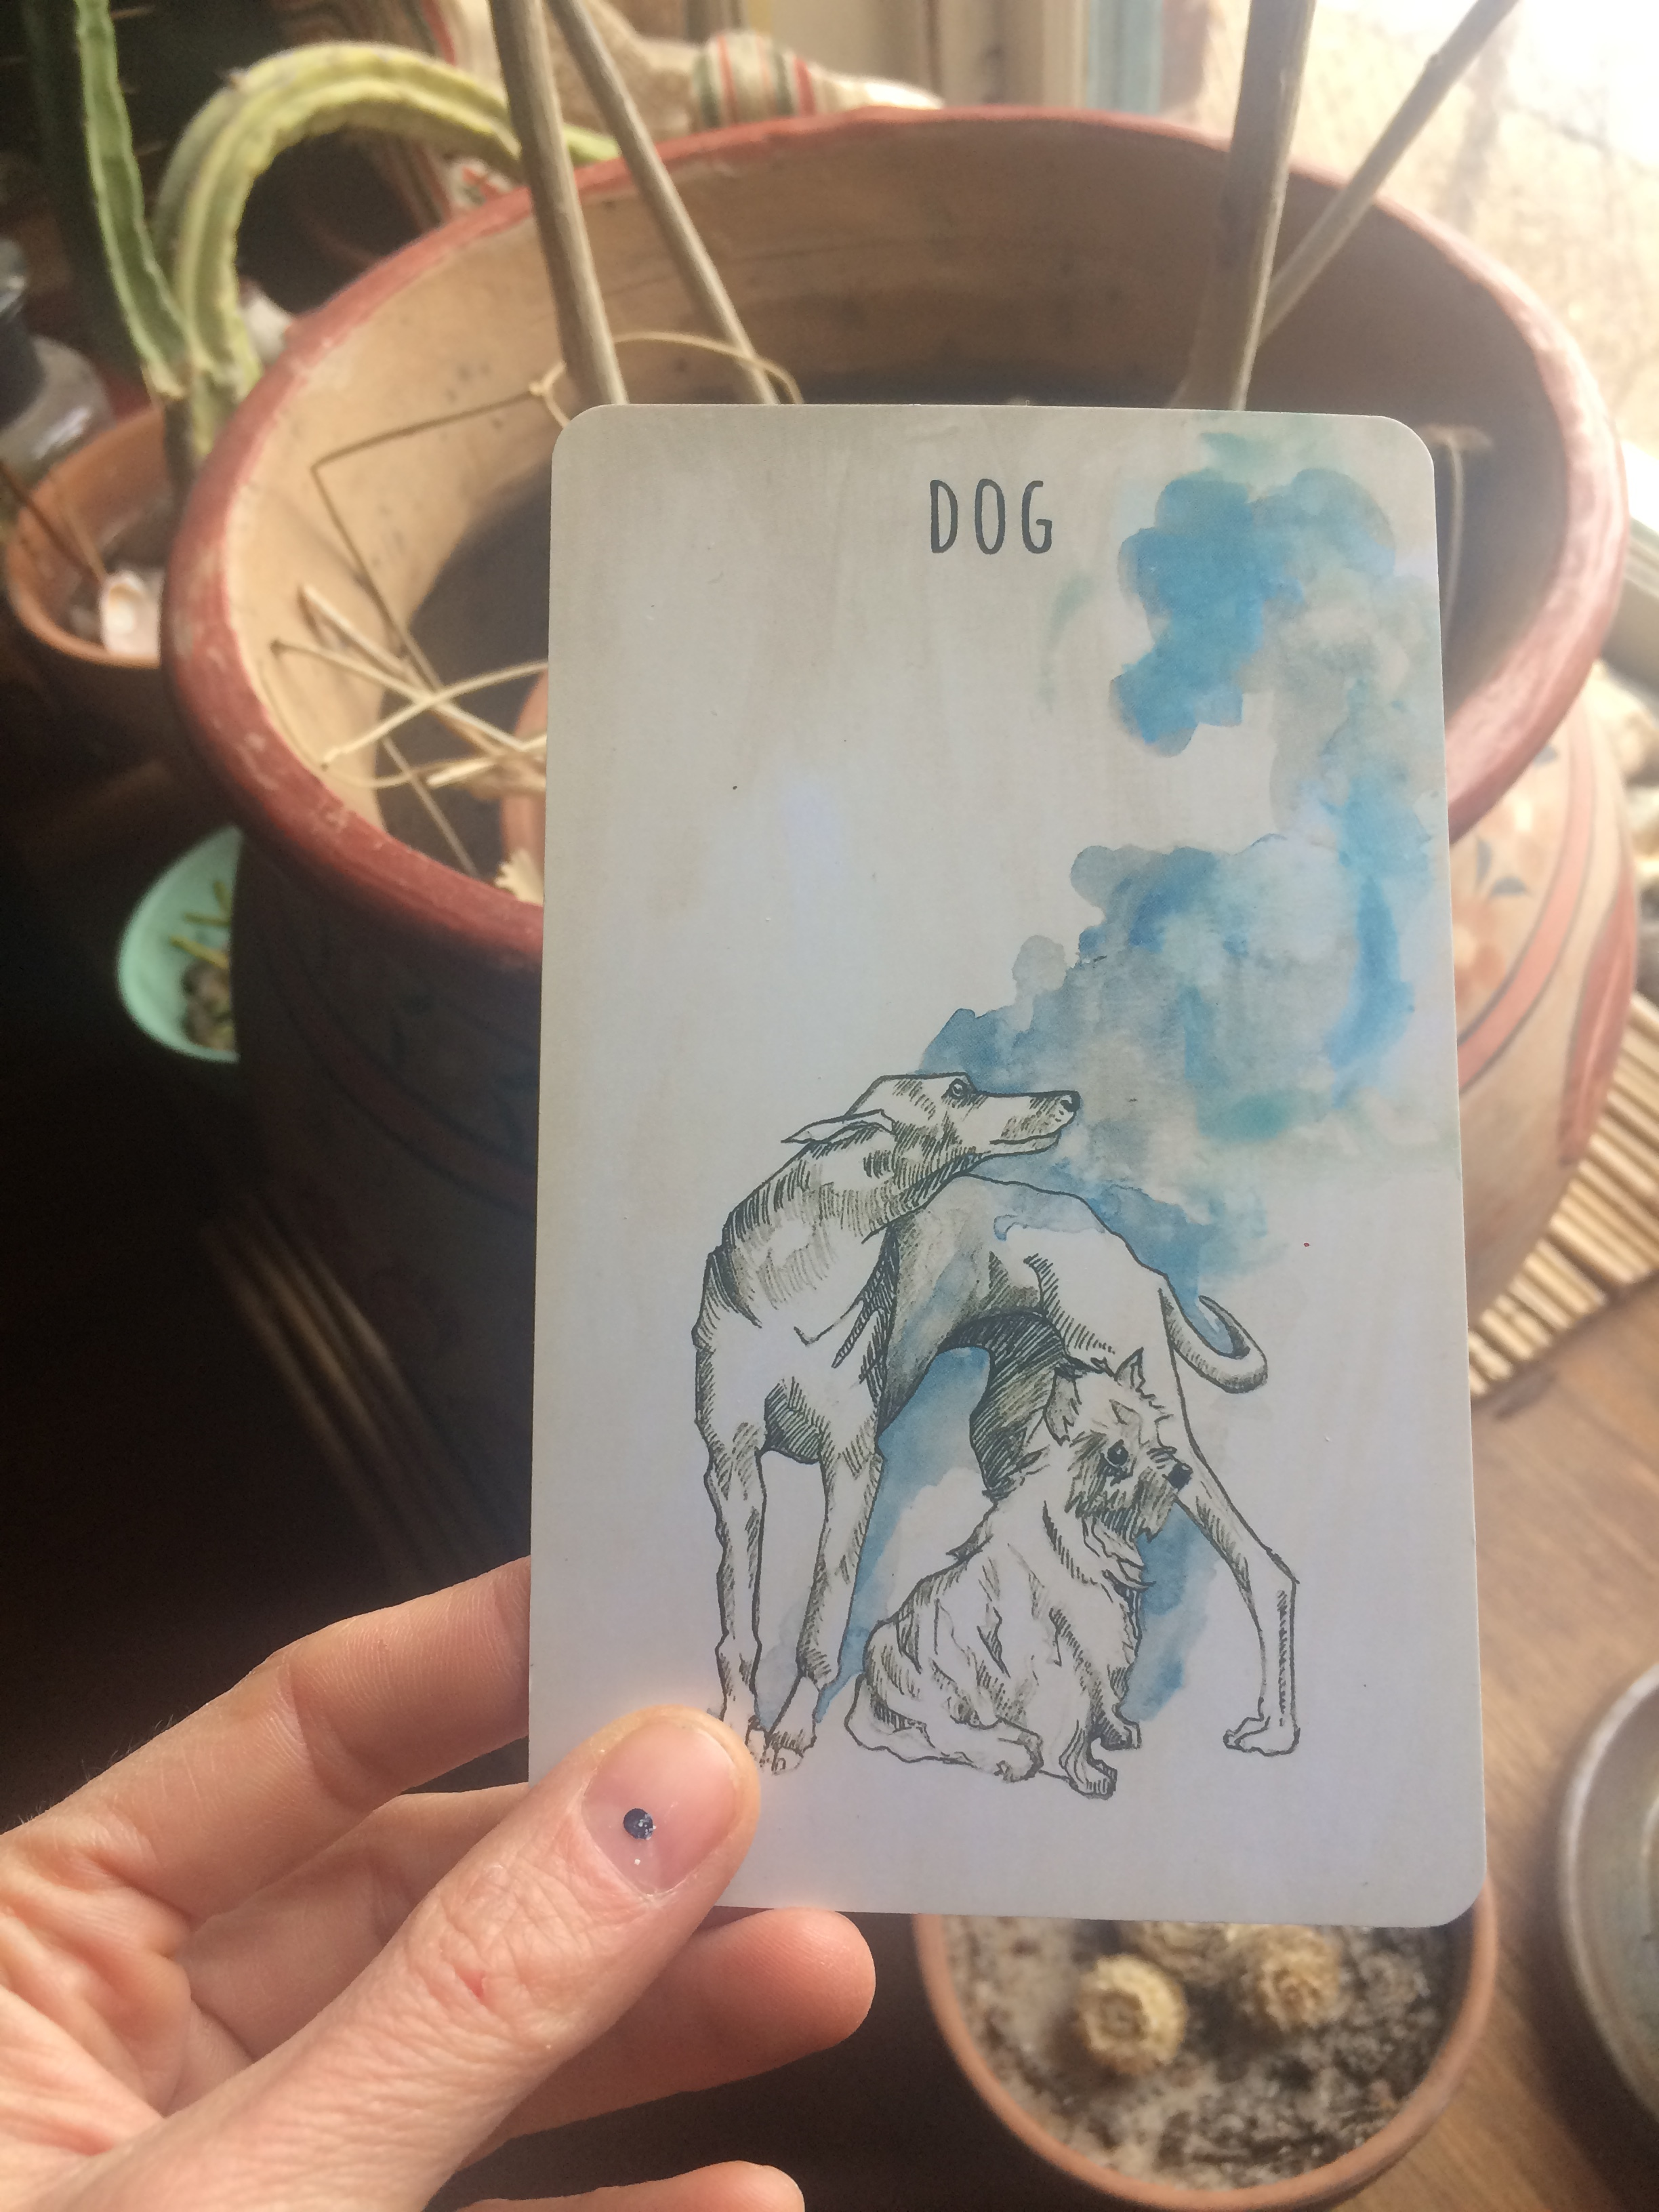 The Scrying Ink, Dog. WE HAVE DOGES.